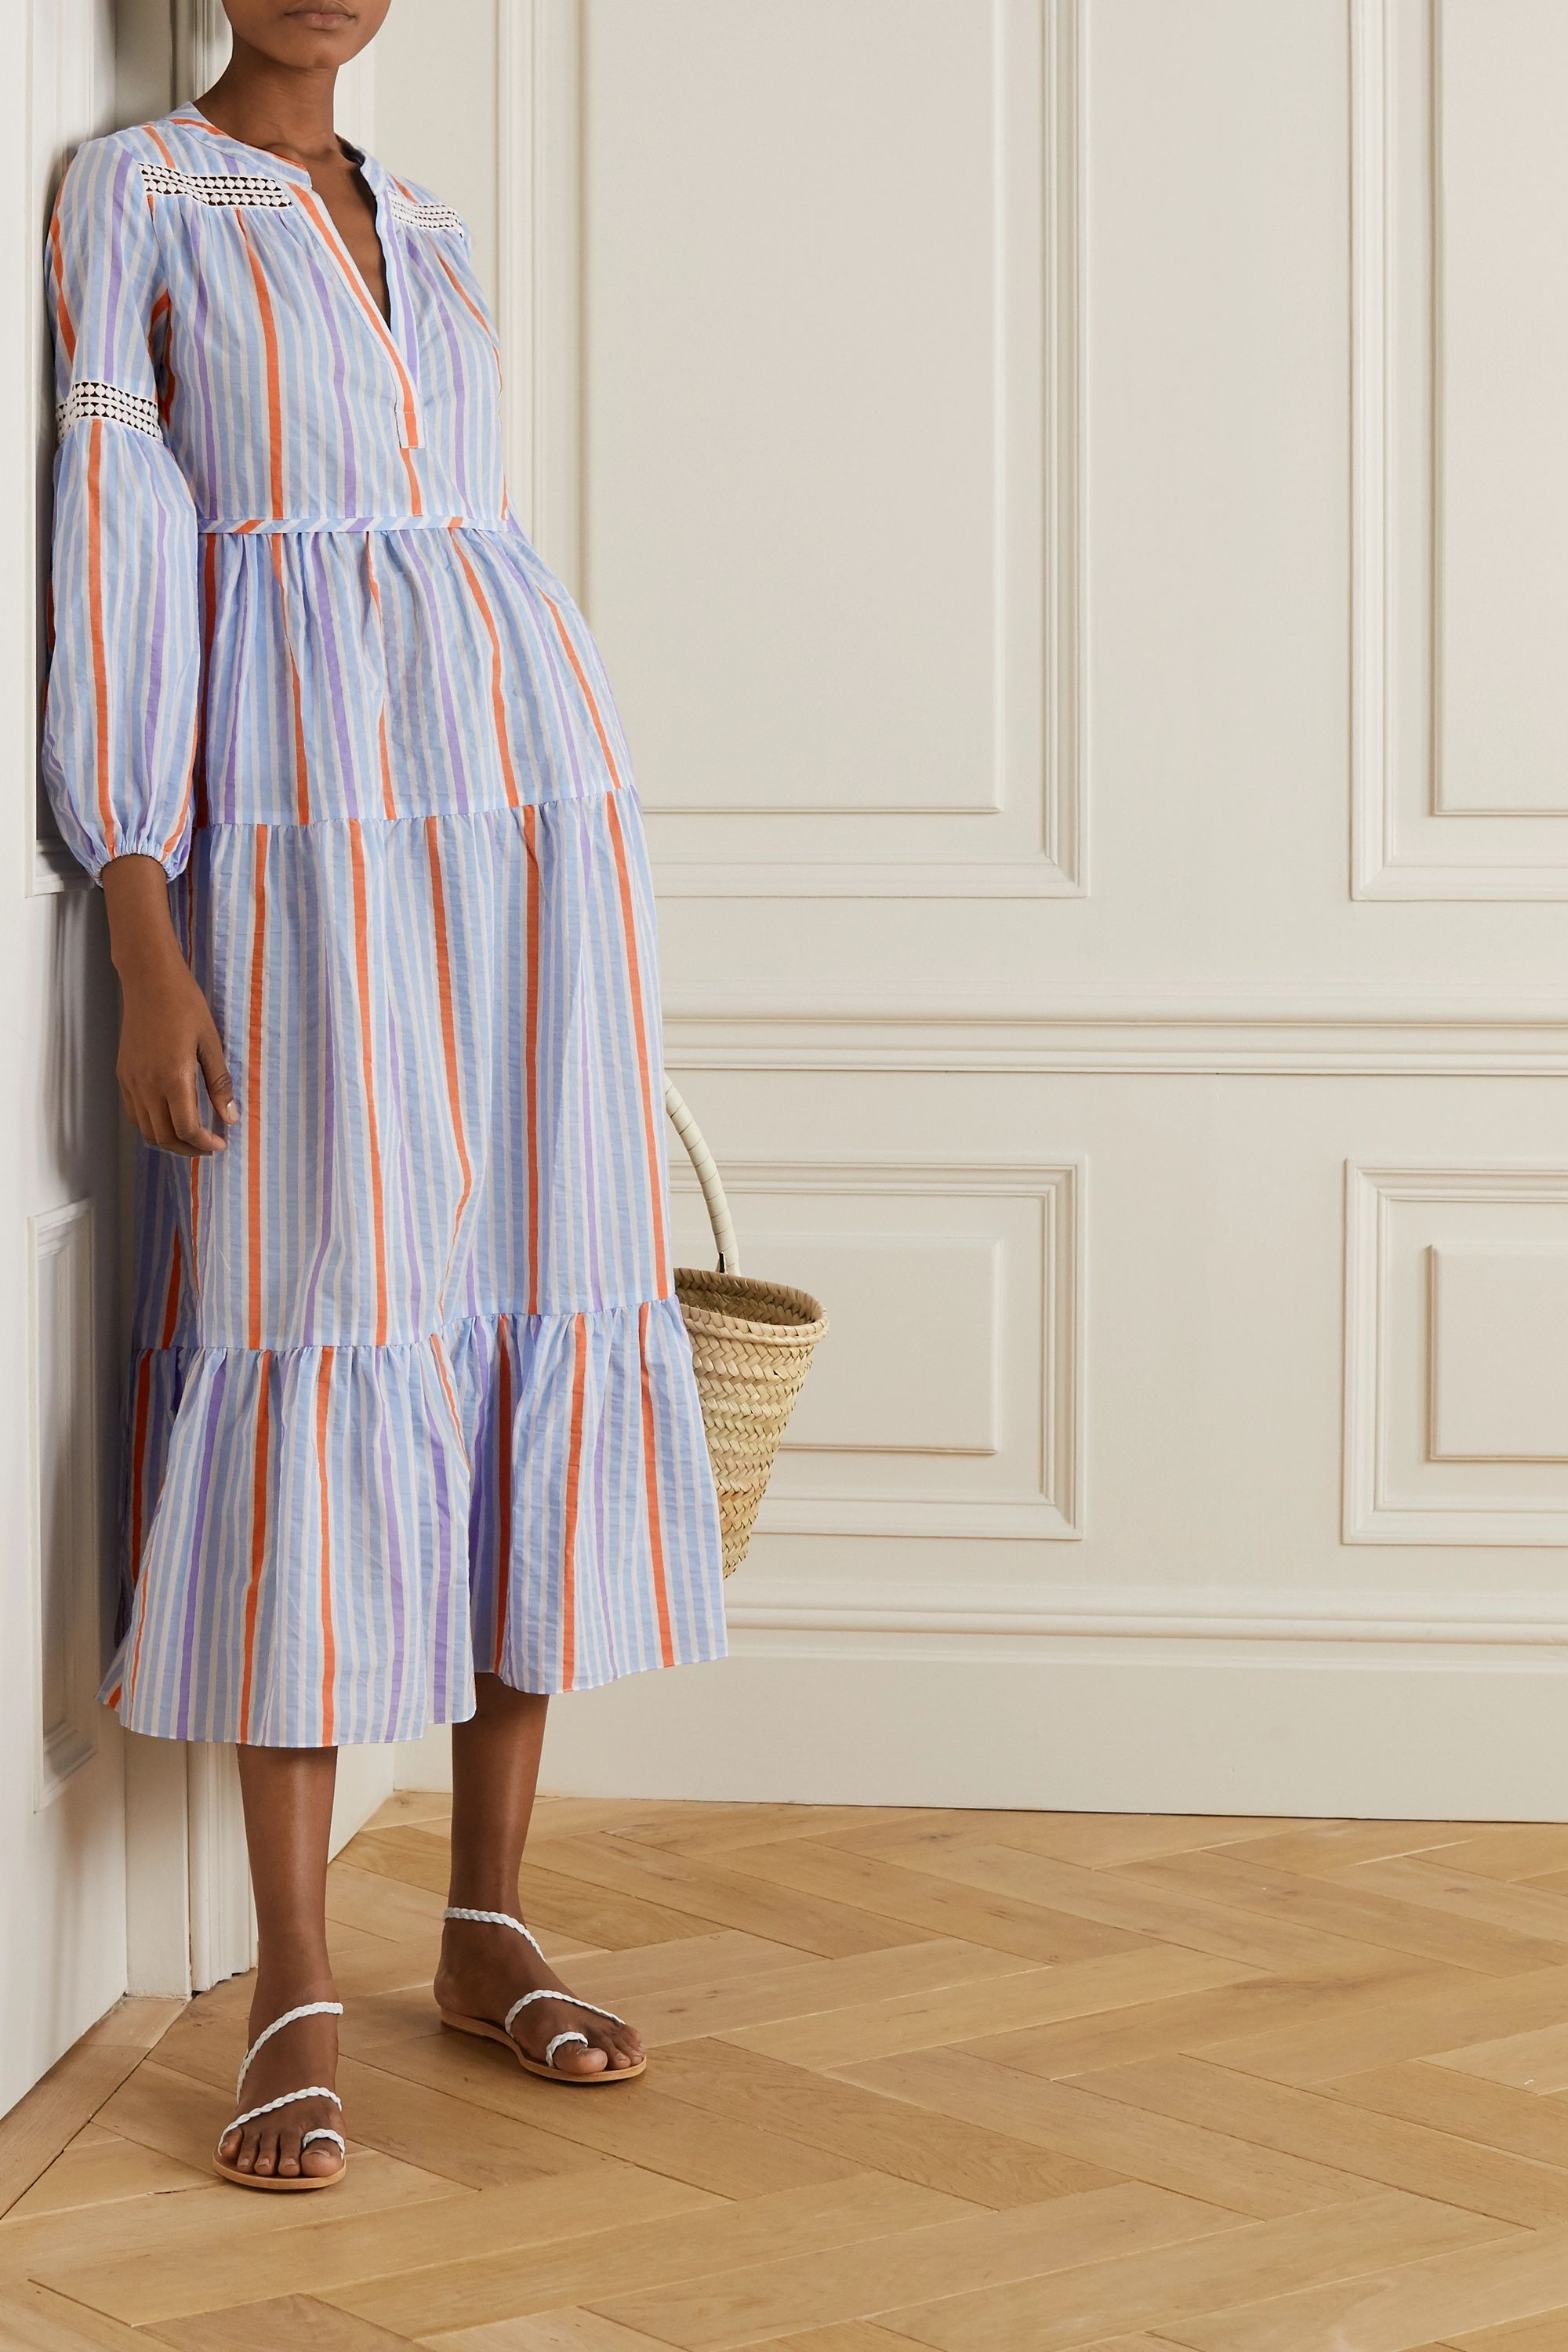 31 Tiered Dresses You Ll Want To Frolic Through A Meadow In Tiered Dresses Beach Wear Outfits Striped Linen [ 3000 x 2000 Pixel ]